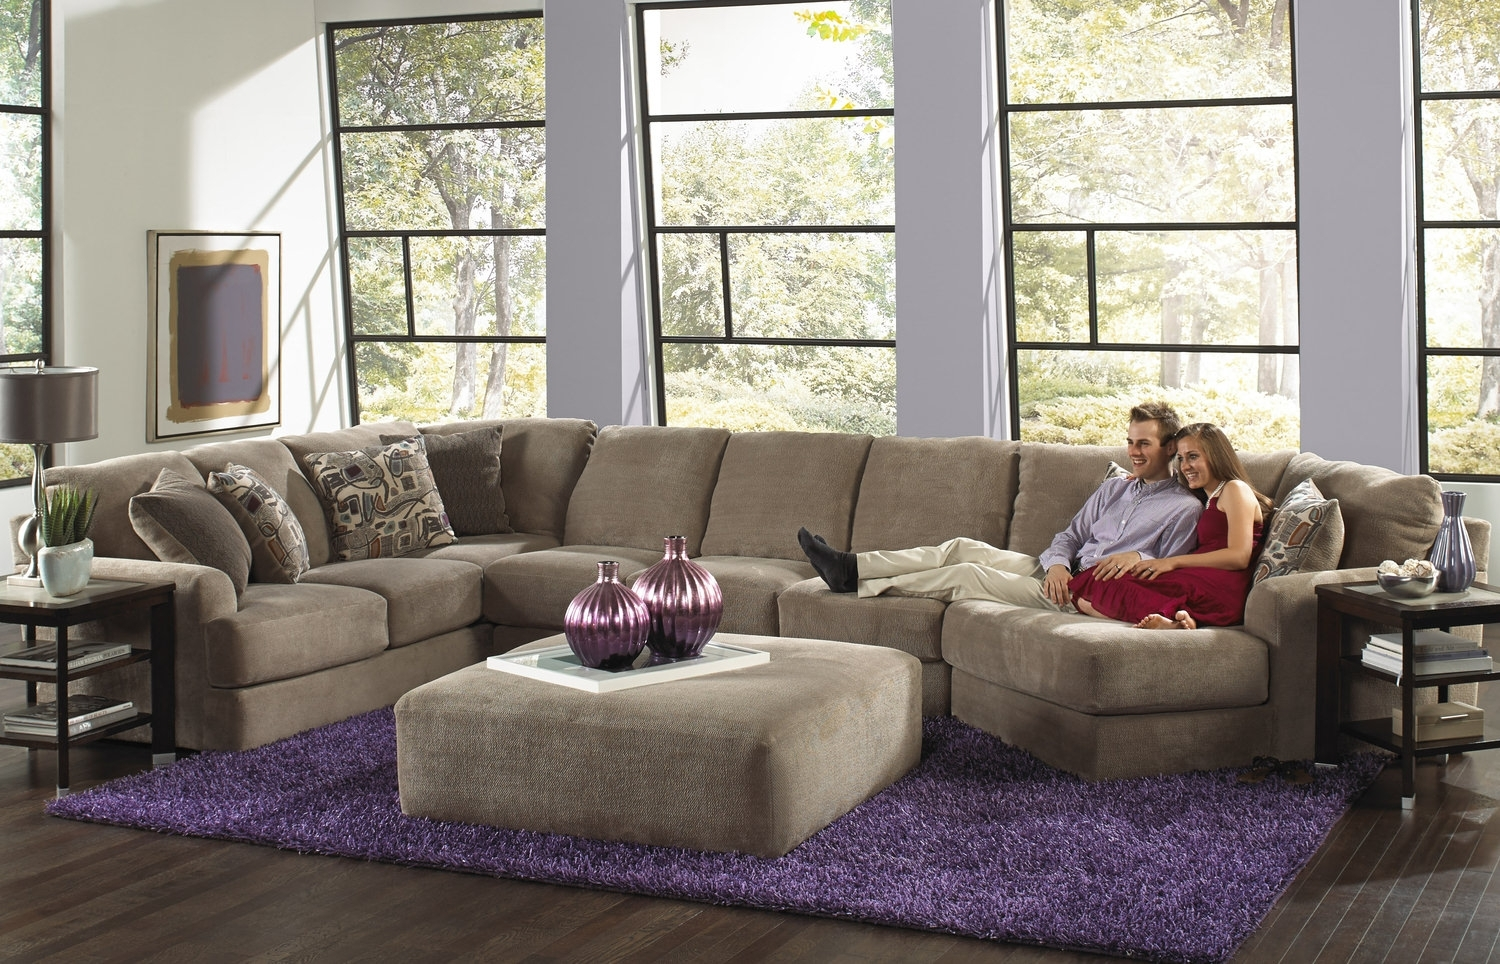 Regal 3 Piece Modular Sectional | Hom Furniture Throughout Eau Claire Wi Sectional Sofas (View 4 of 10)